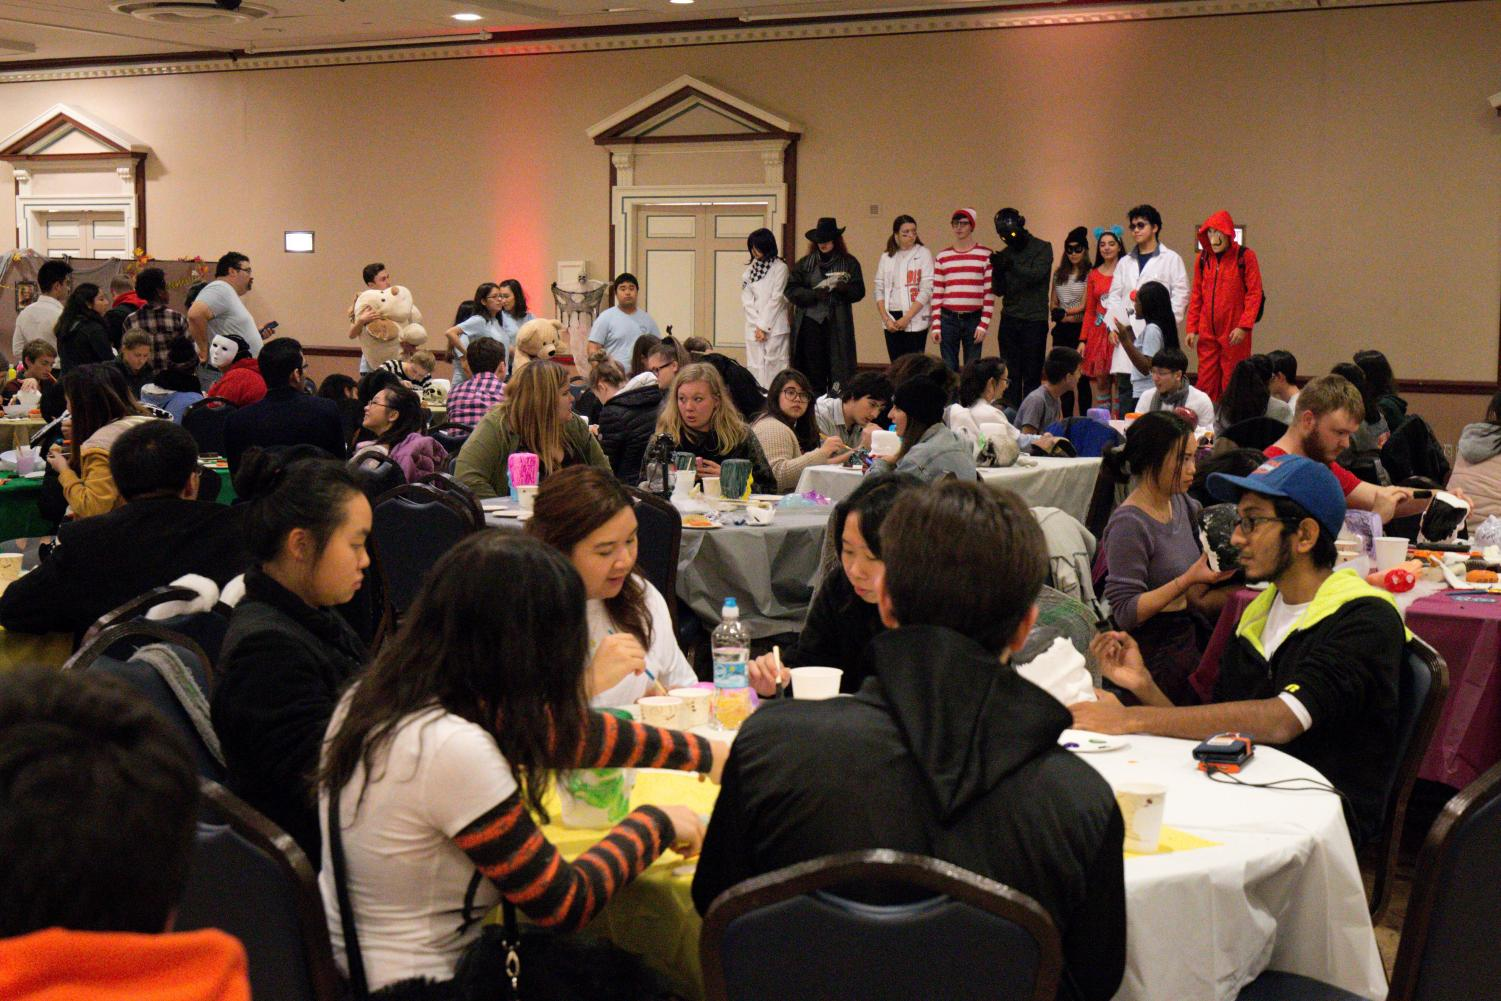 The Illini Union Board hosts a costume contest in the ballroom of the Illini Union on Friday. Prior to this, IUB canceled three events in October.